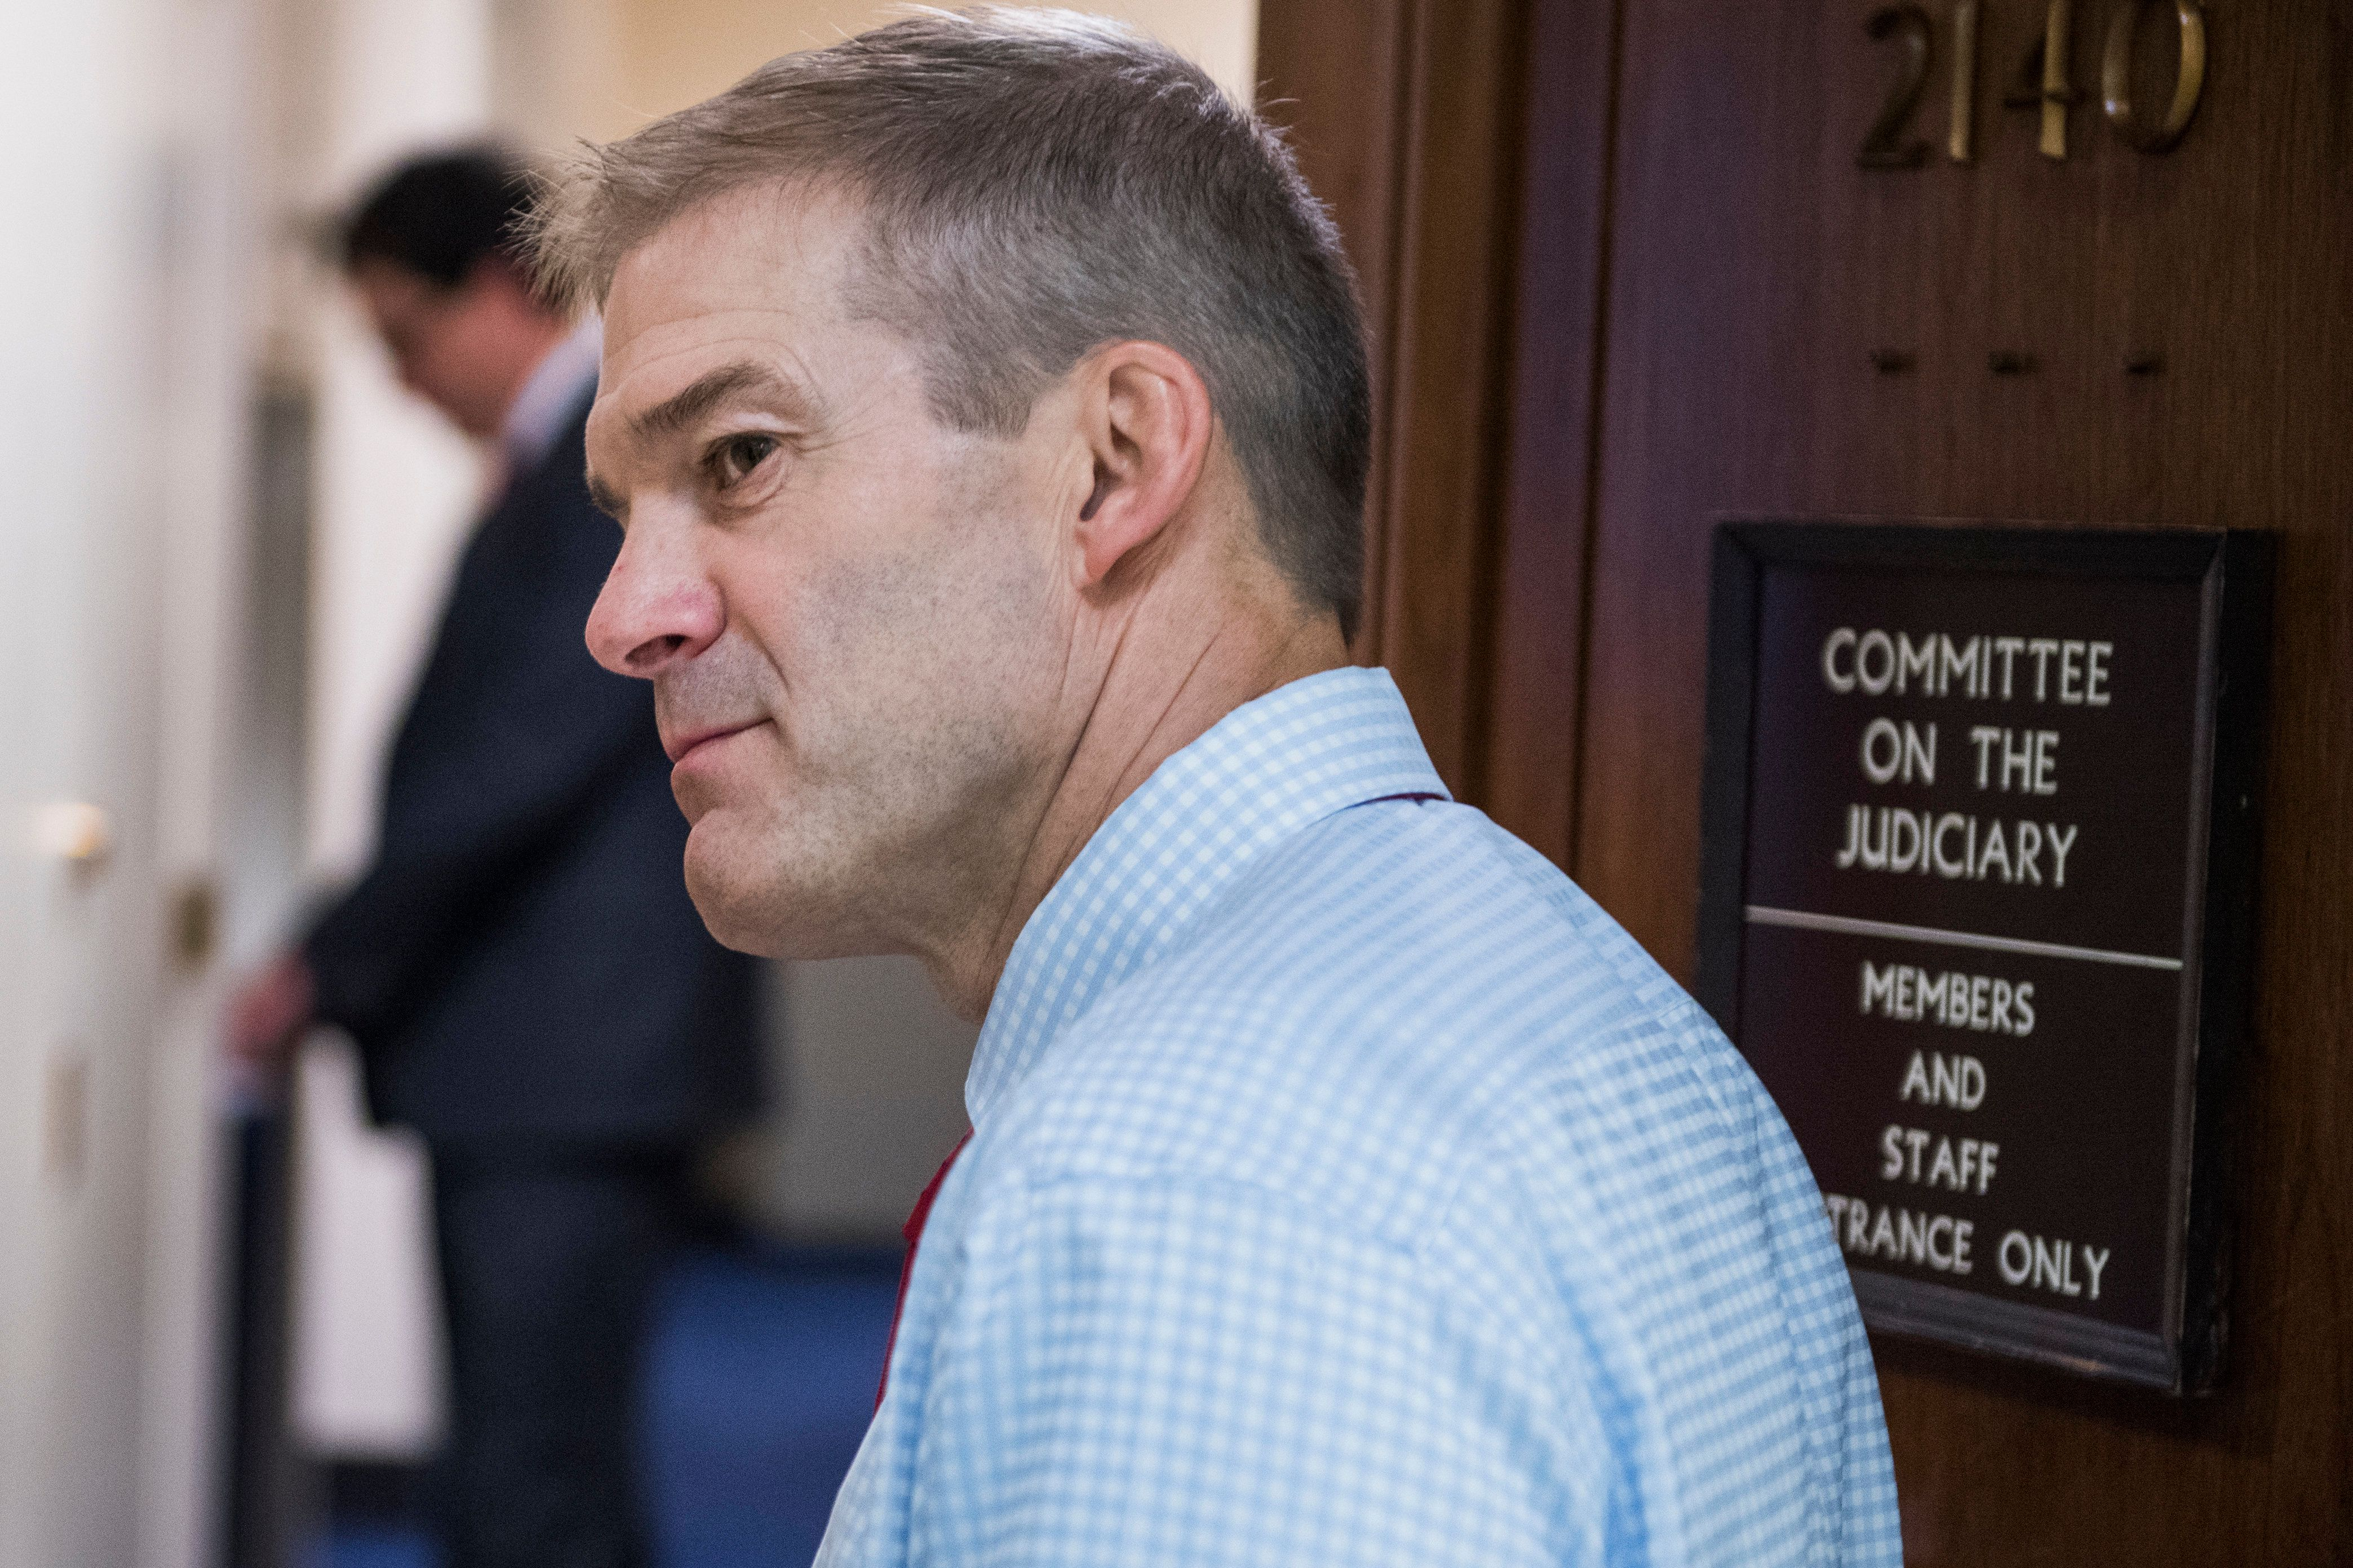 Rep. Jim Jordan (R-Ohio) has denied he had any knowledge of Dr. Richard Strauss' alleged behavior while they both worked at O